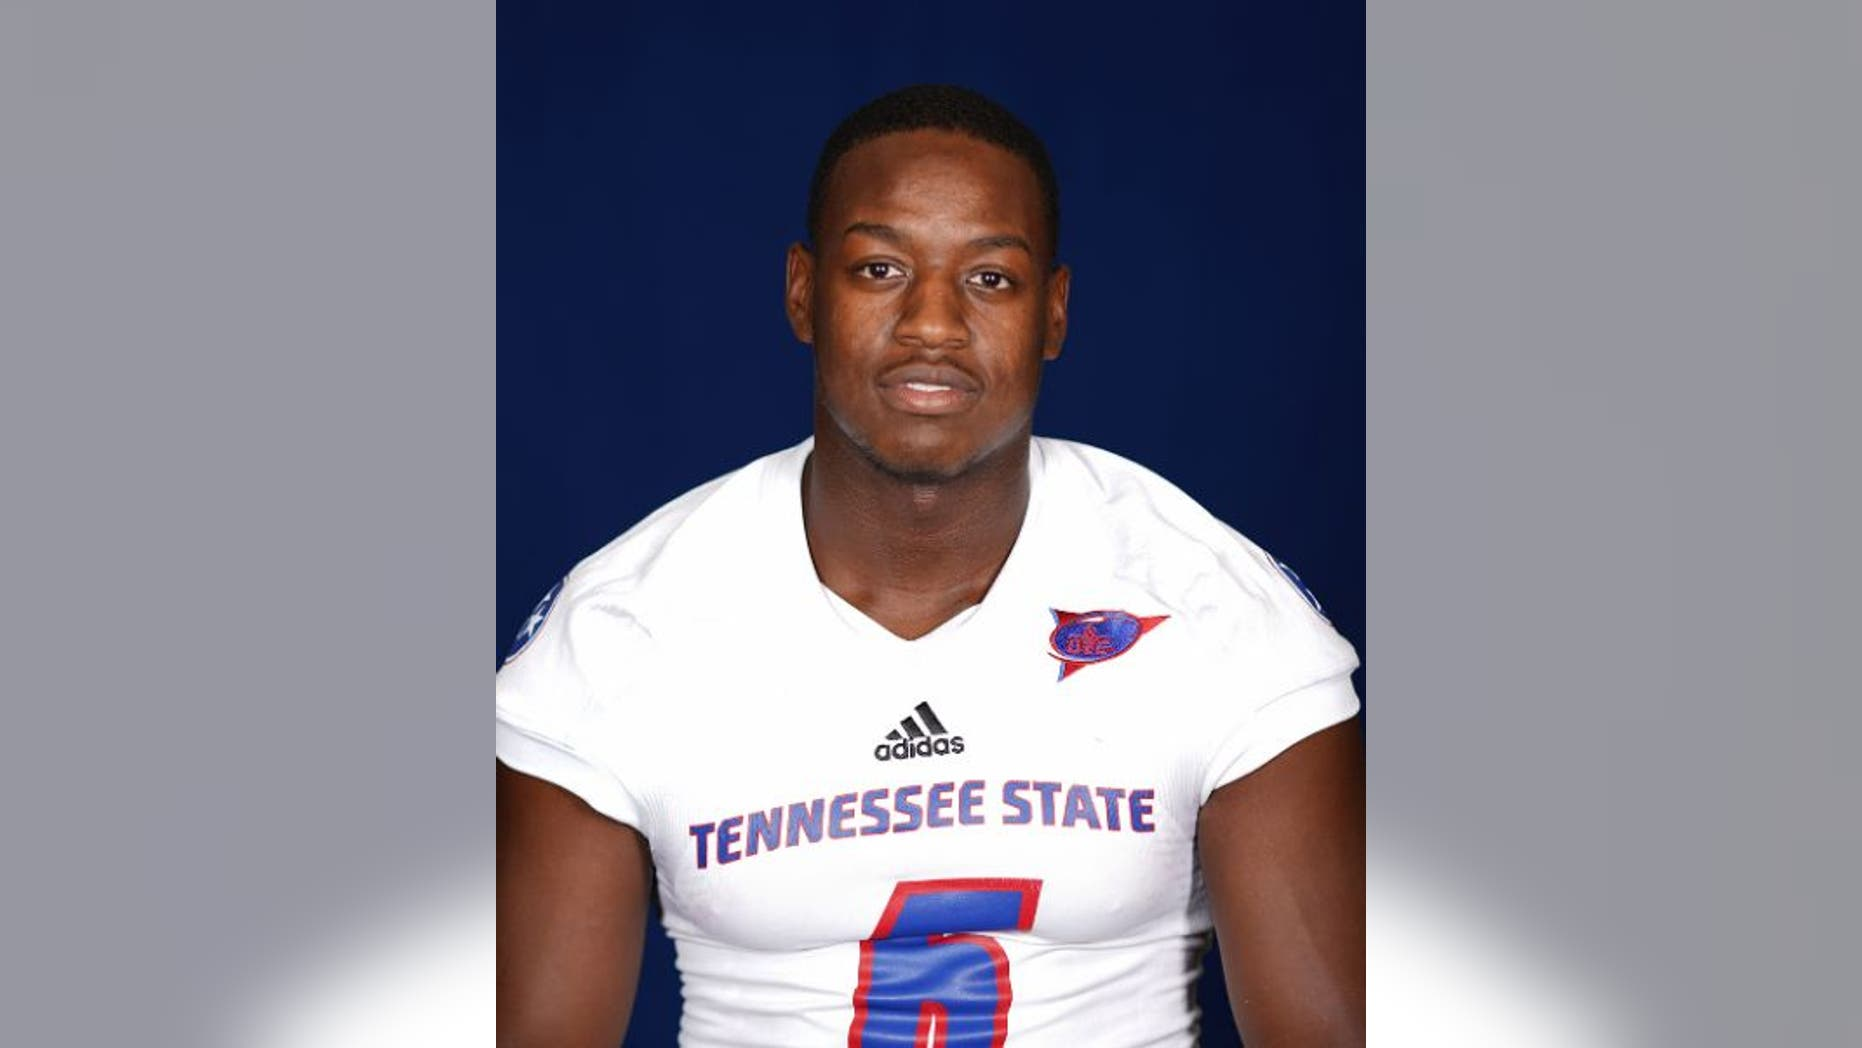 Tennessee State linebacker Christion Abercrombie is in rehab on his way to a full recovery after collapsing on the sidelines and being rushed to the ICU in late September.